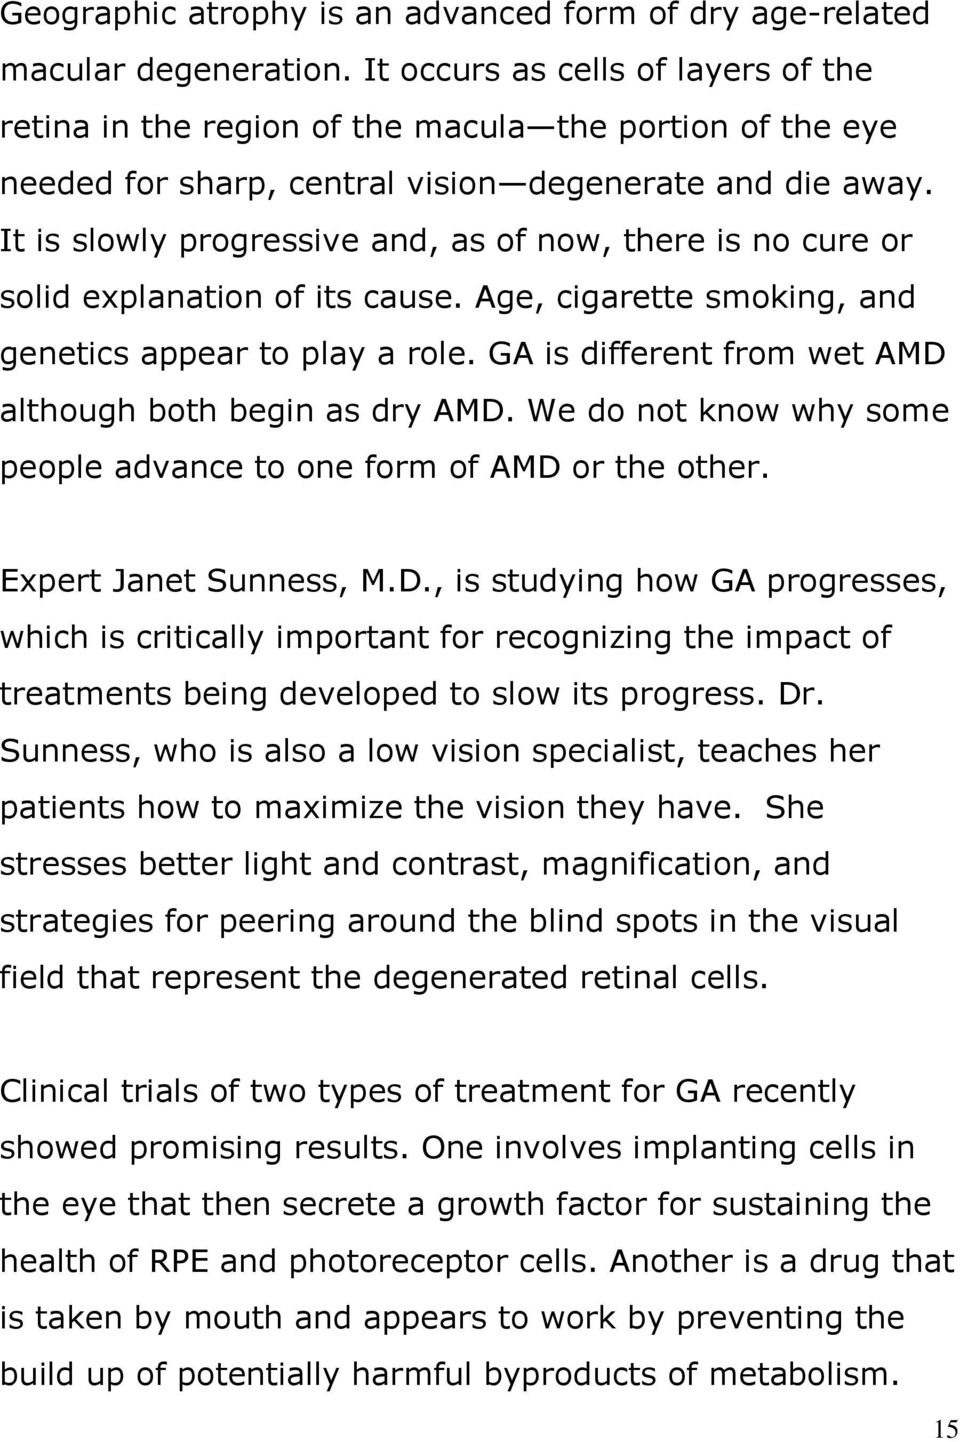 It is slowly progressive and, as of now, there is no cure or solid explanation of its cause. Age, cigarette smoking, and genetics appear to play a role.